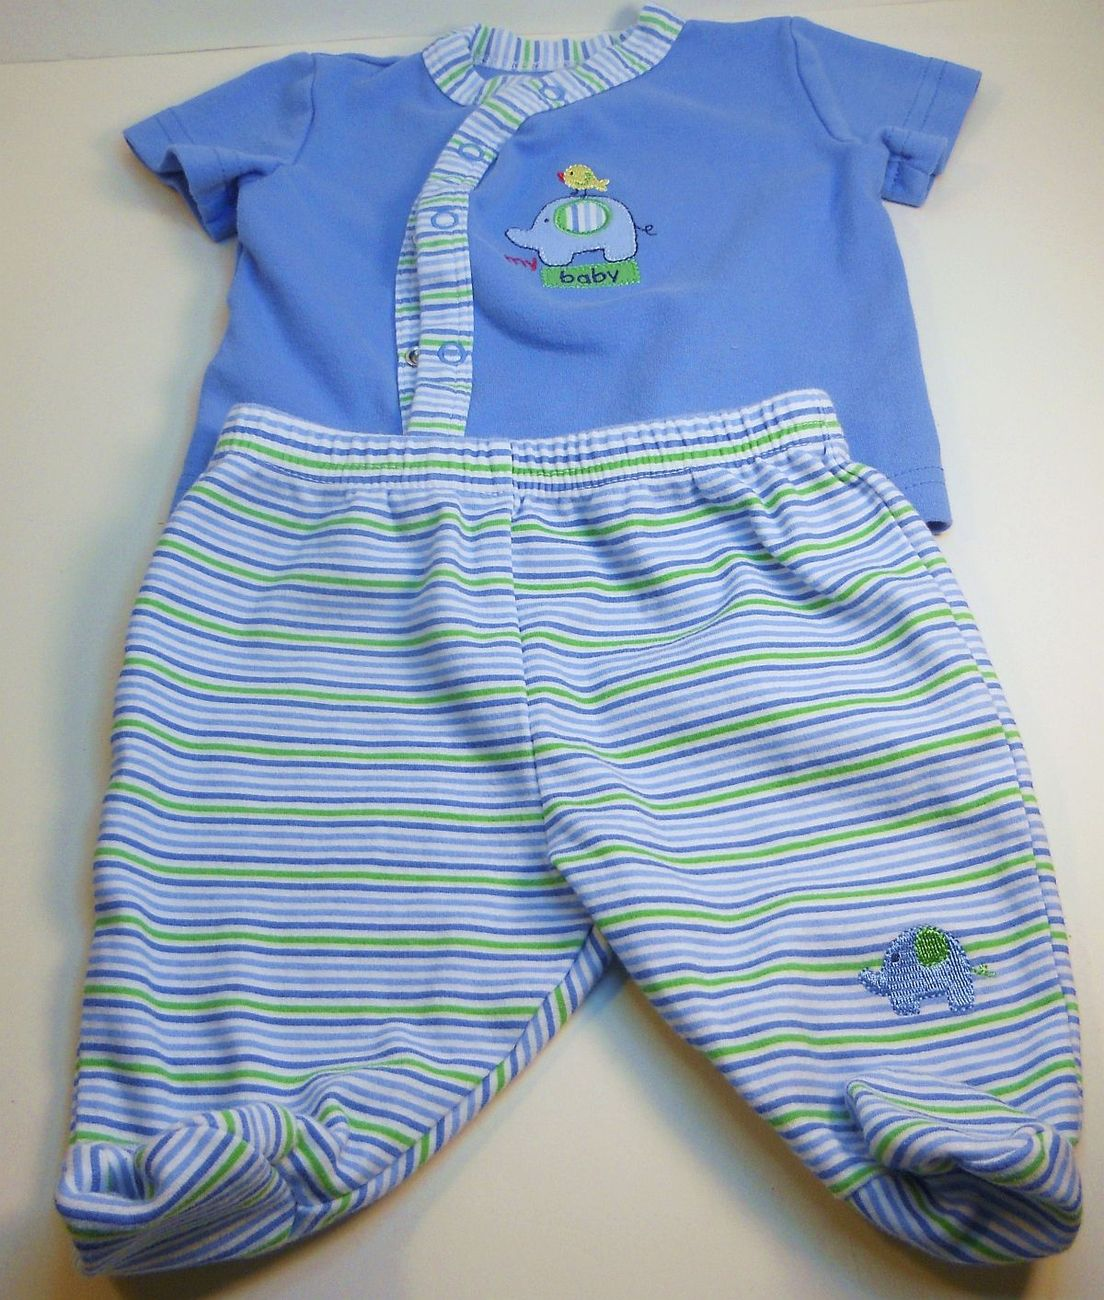 Okie Dokie Boys shirt footie pants set blue stripe elephant New born